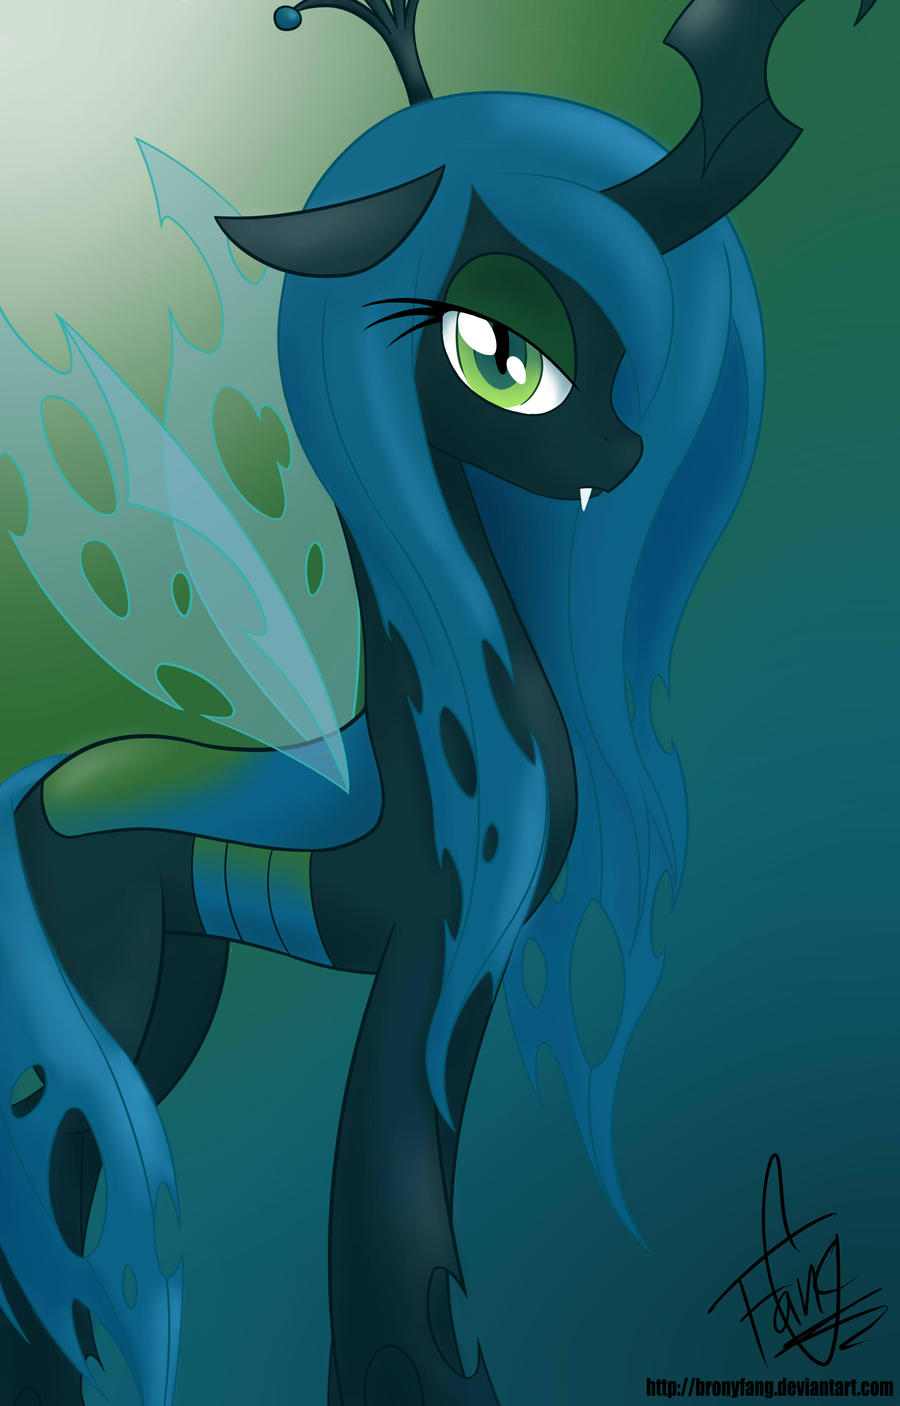 Queen Chrysalis by BronyFang